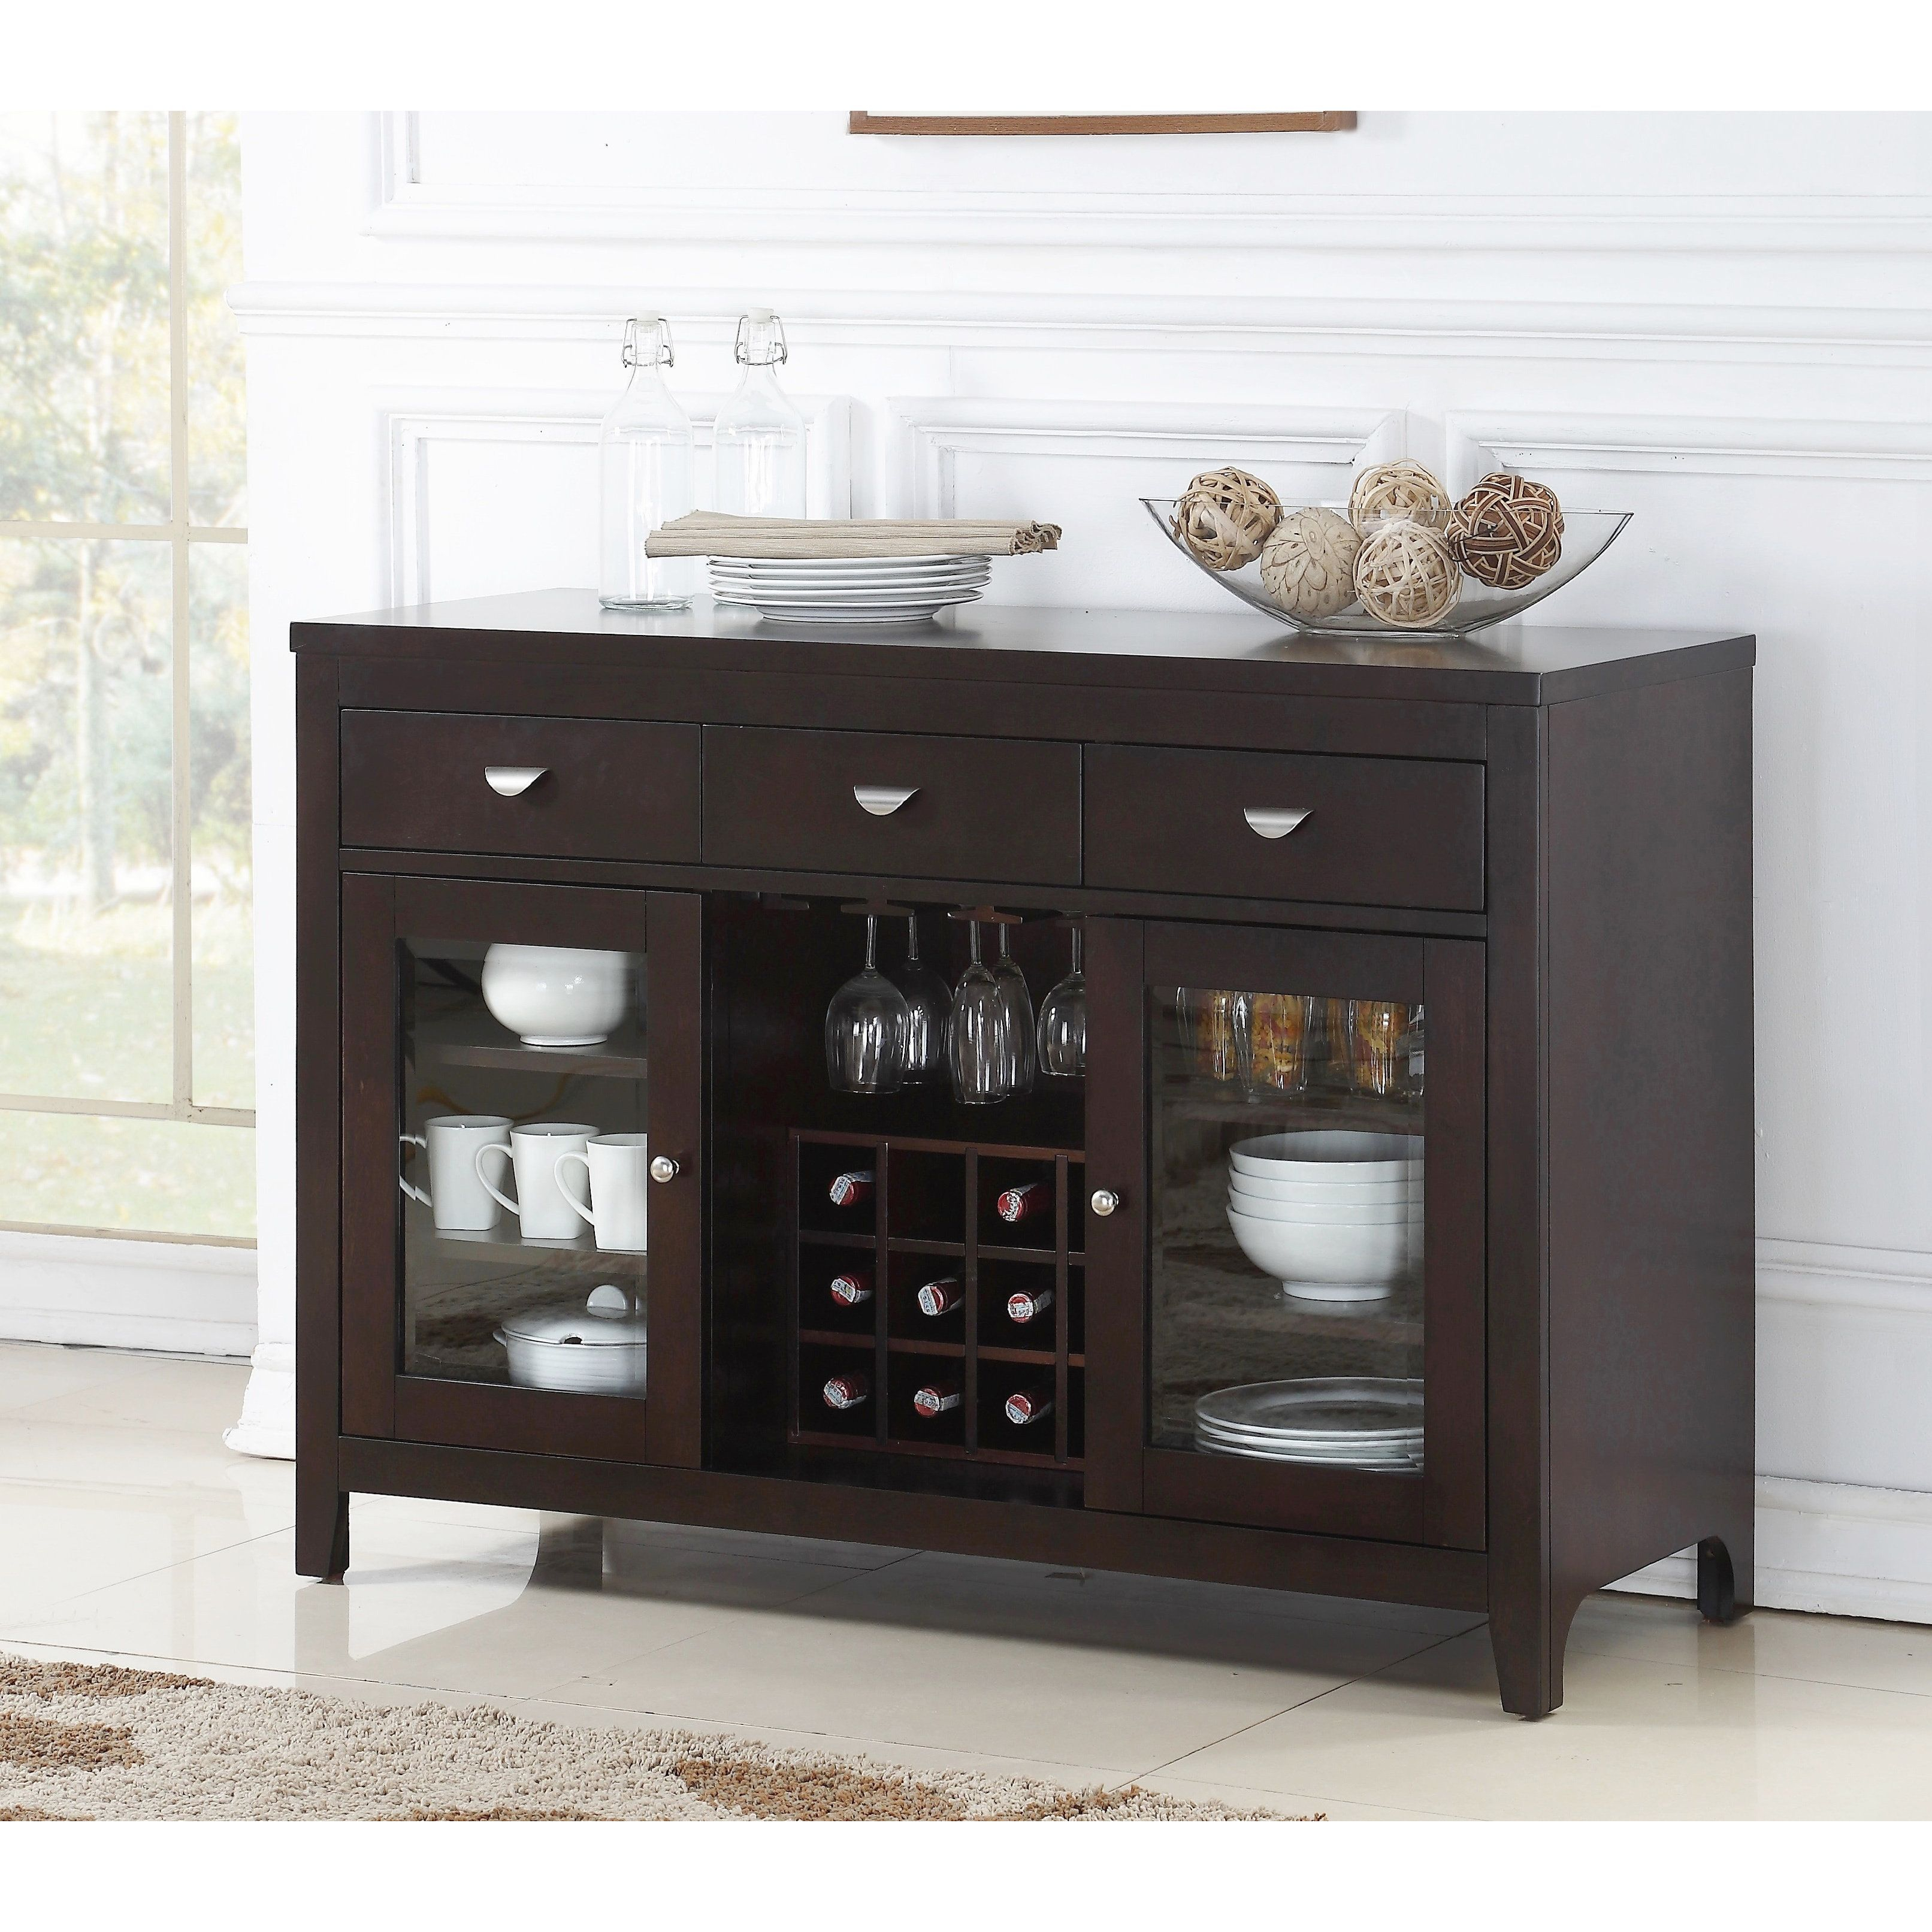 Abbyson Clarkston Espresso Dining Buffet Server | Products Throughout Simple Living Southport Dining Buffets (View 1 of 30)